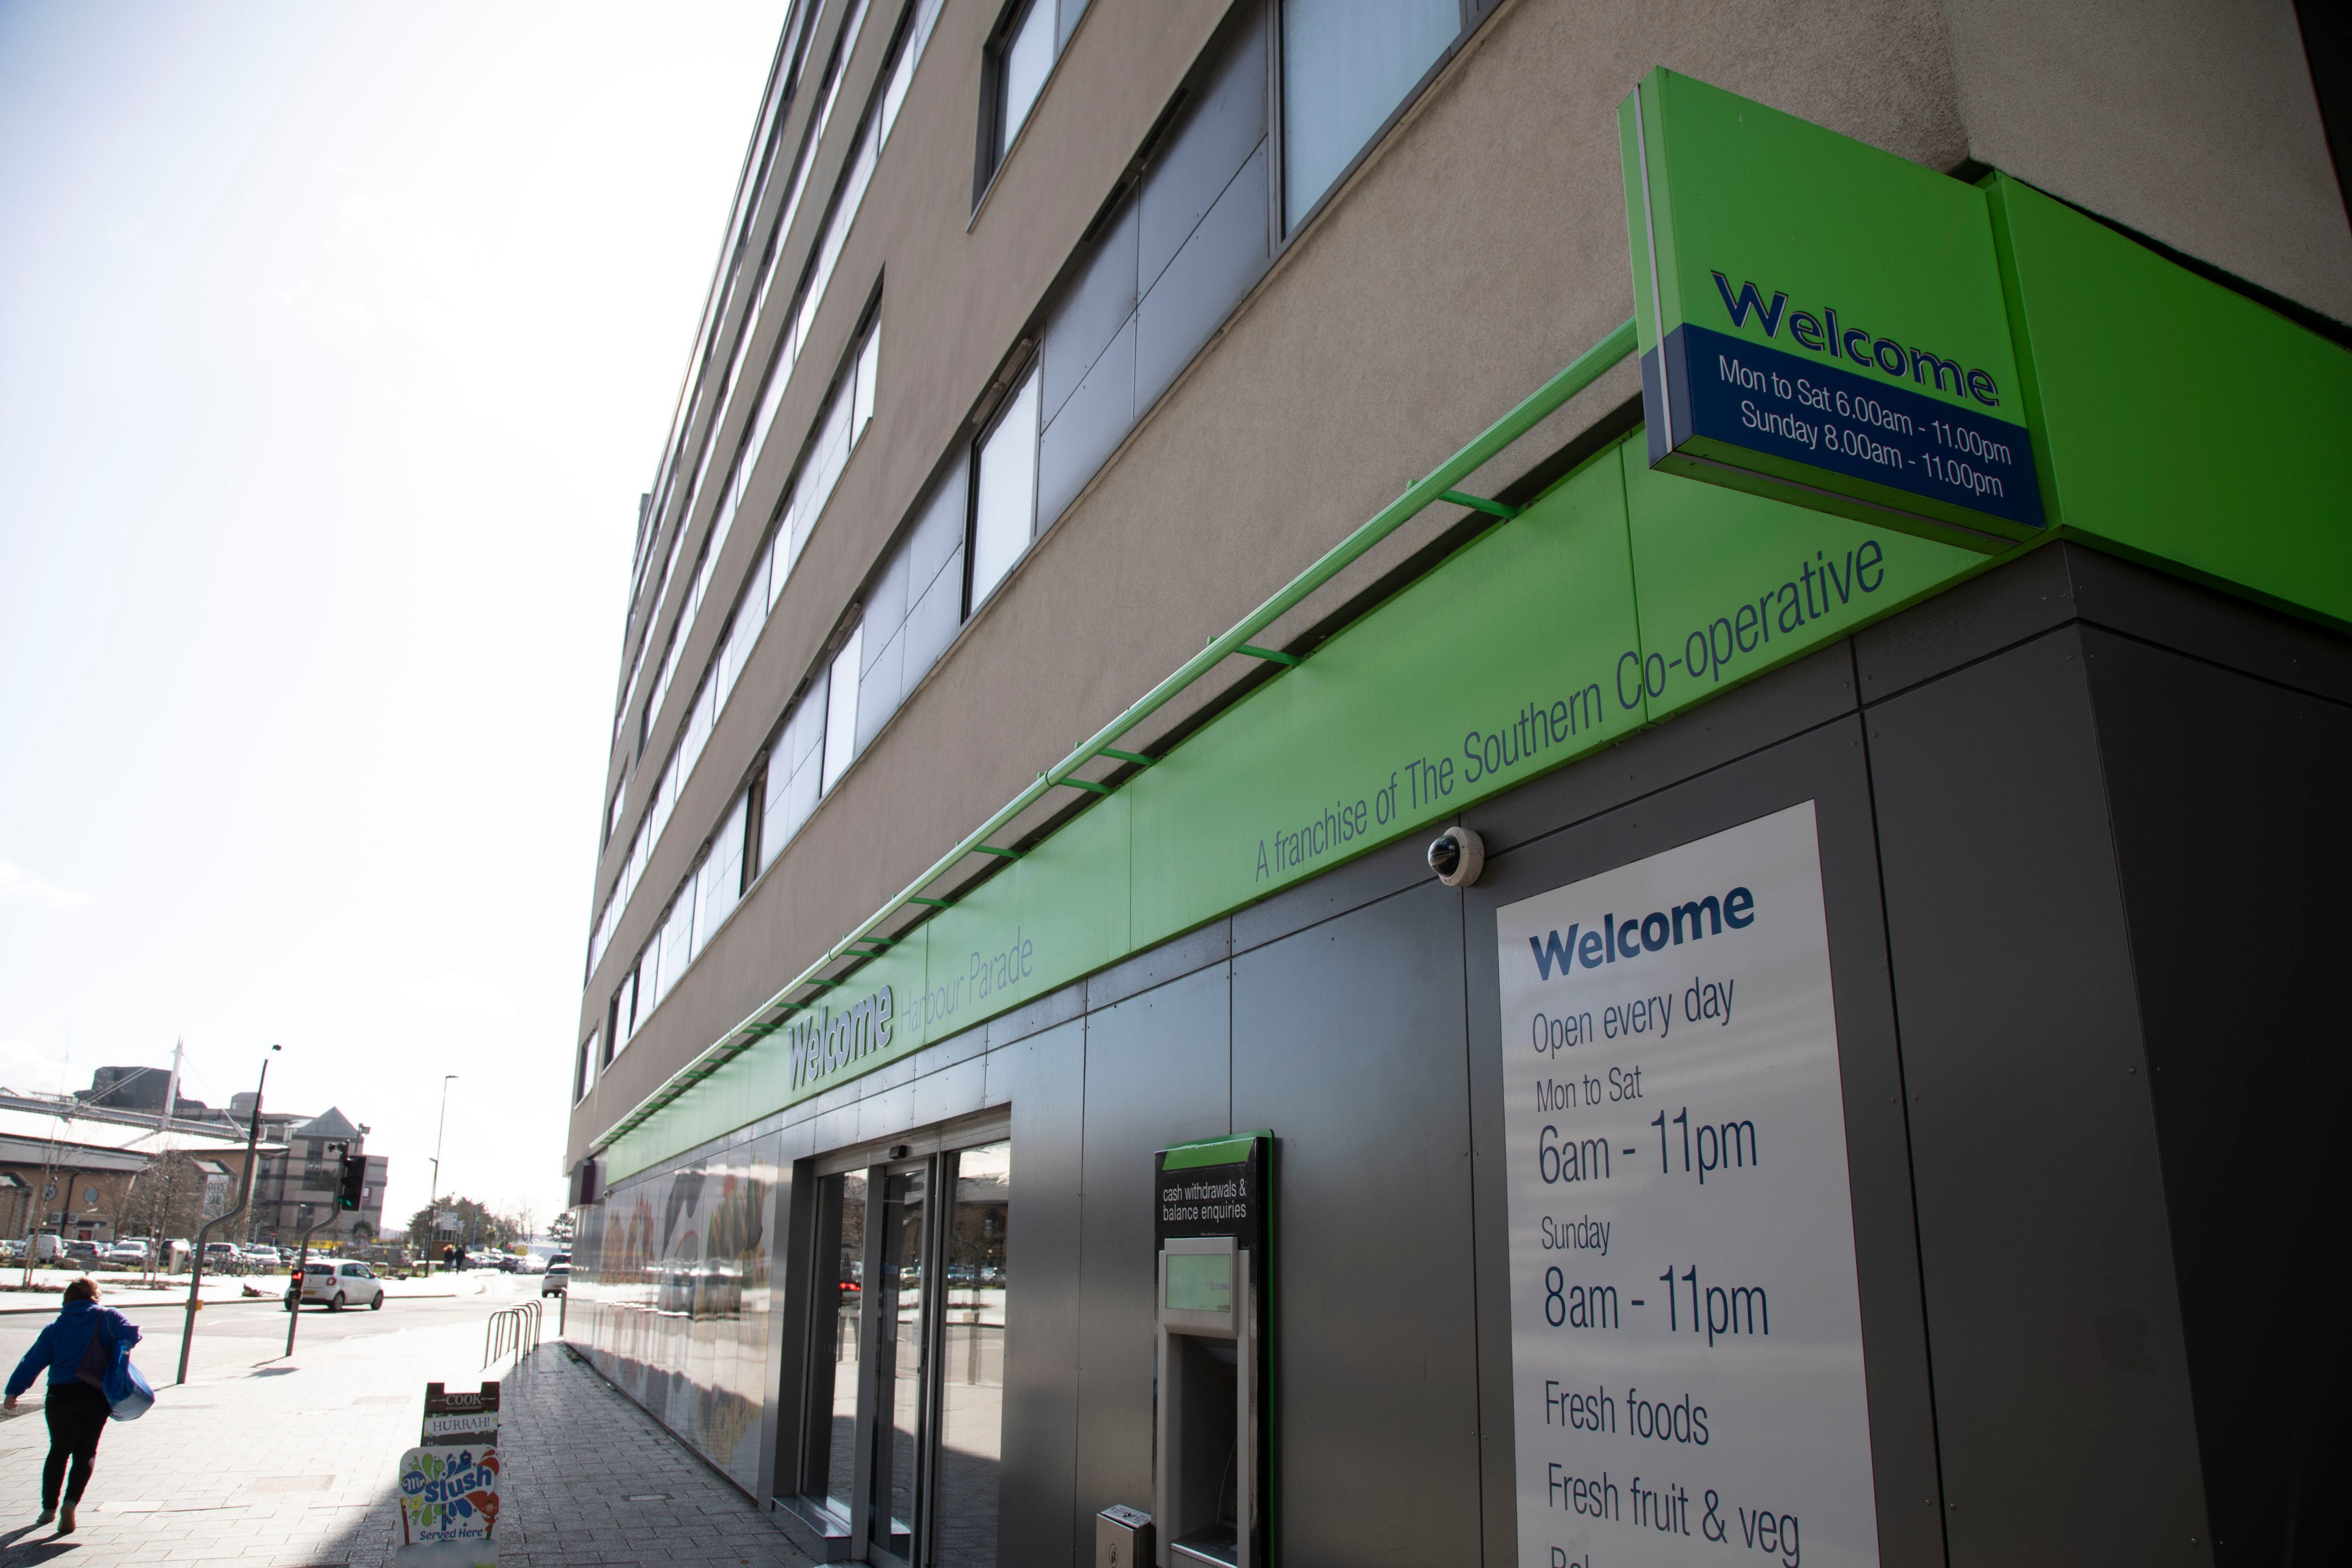 Welcome - Harbour Parade (Southern Co-op)